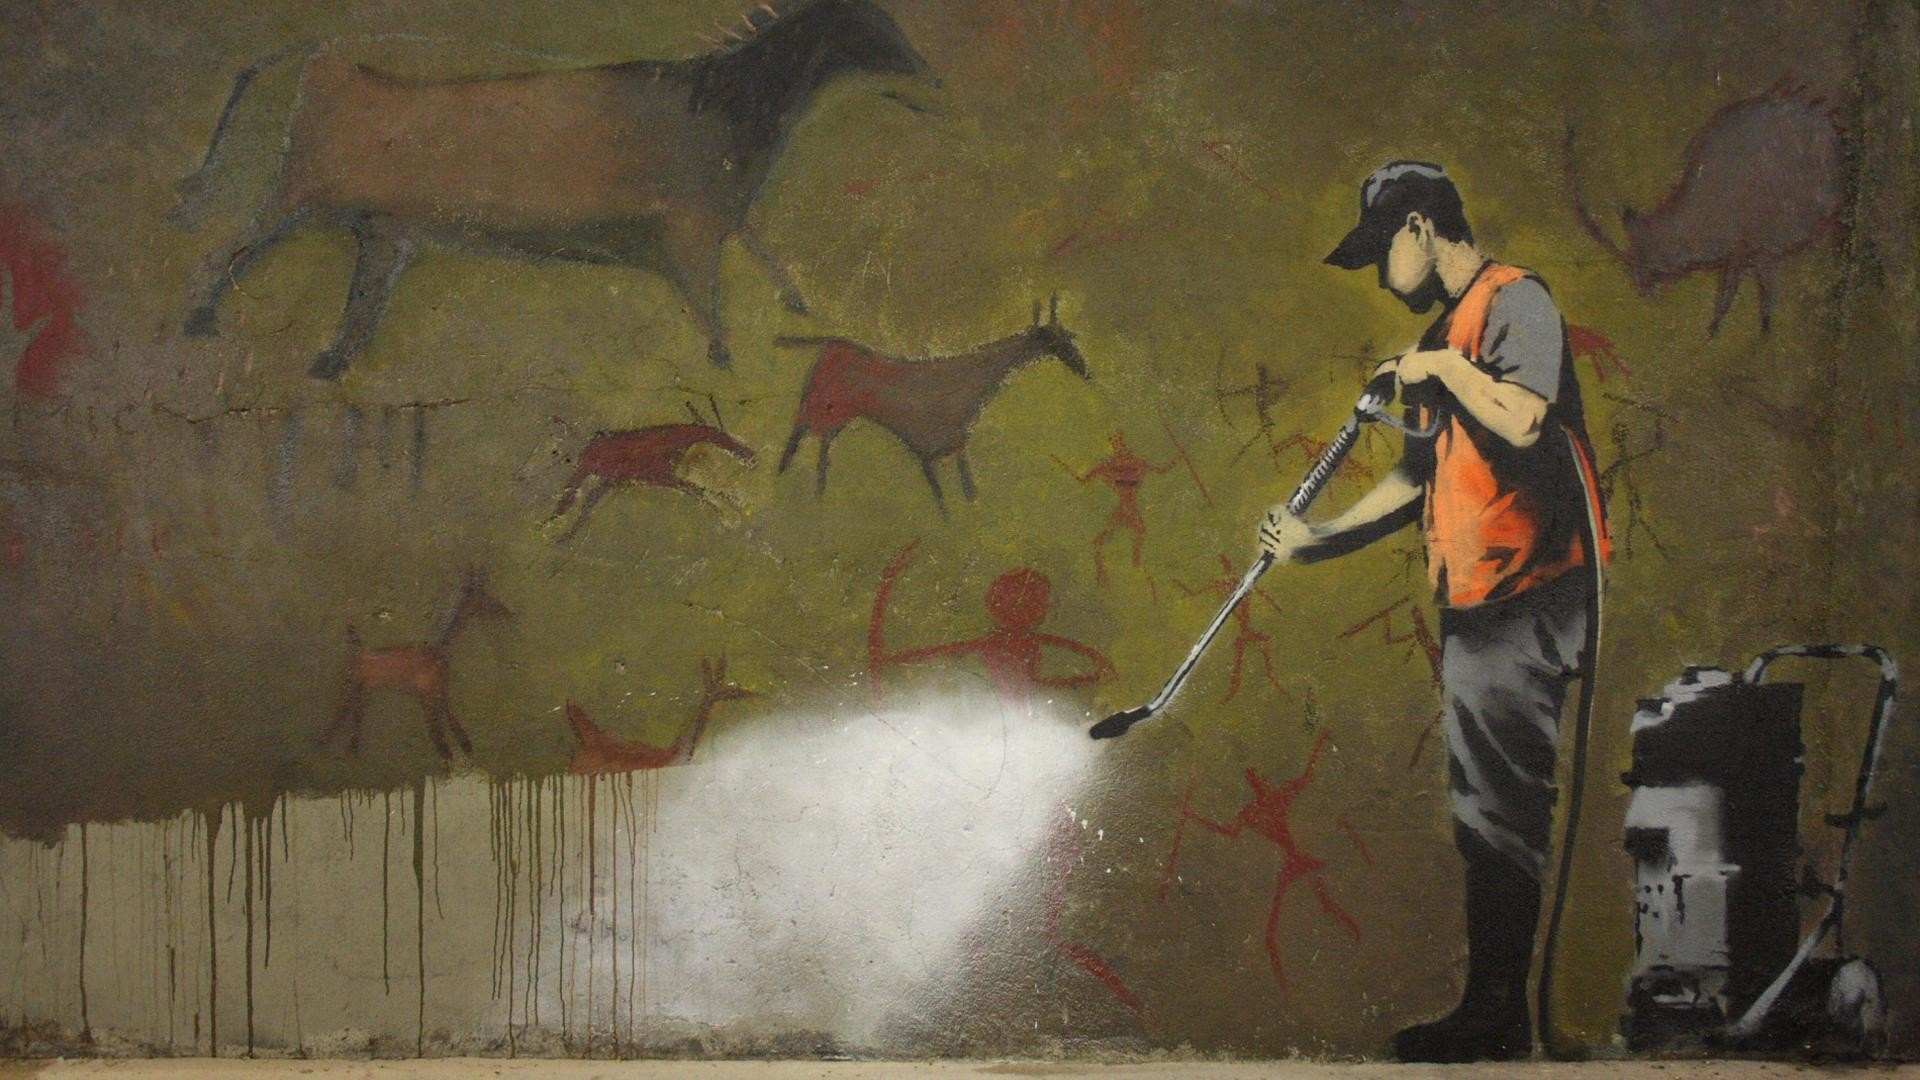 wallpaper.wiki-HD-Banksy-Art-Bakcground-PIC-WPC0010104